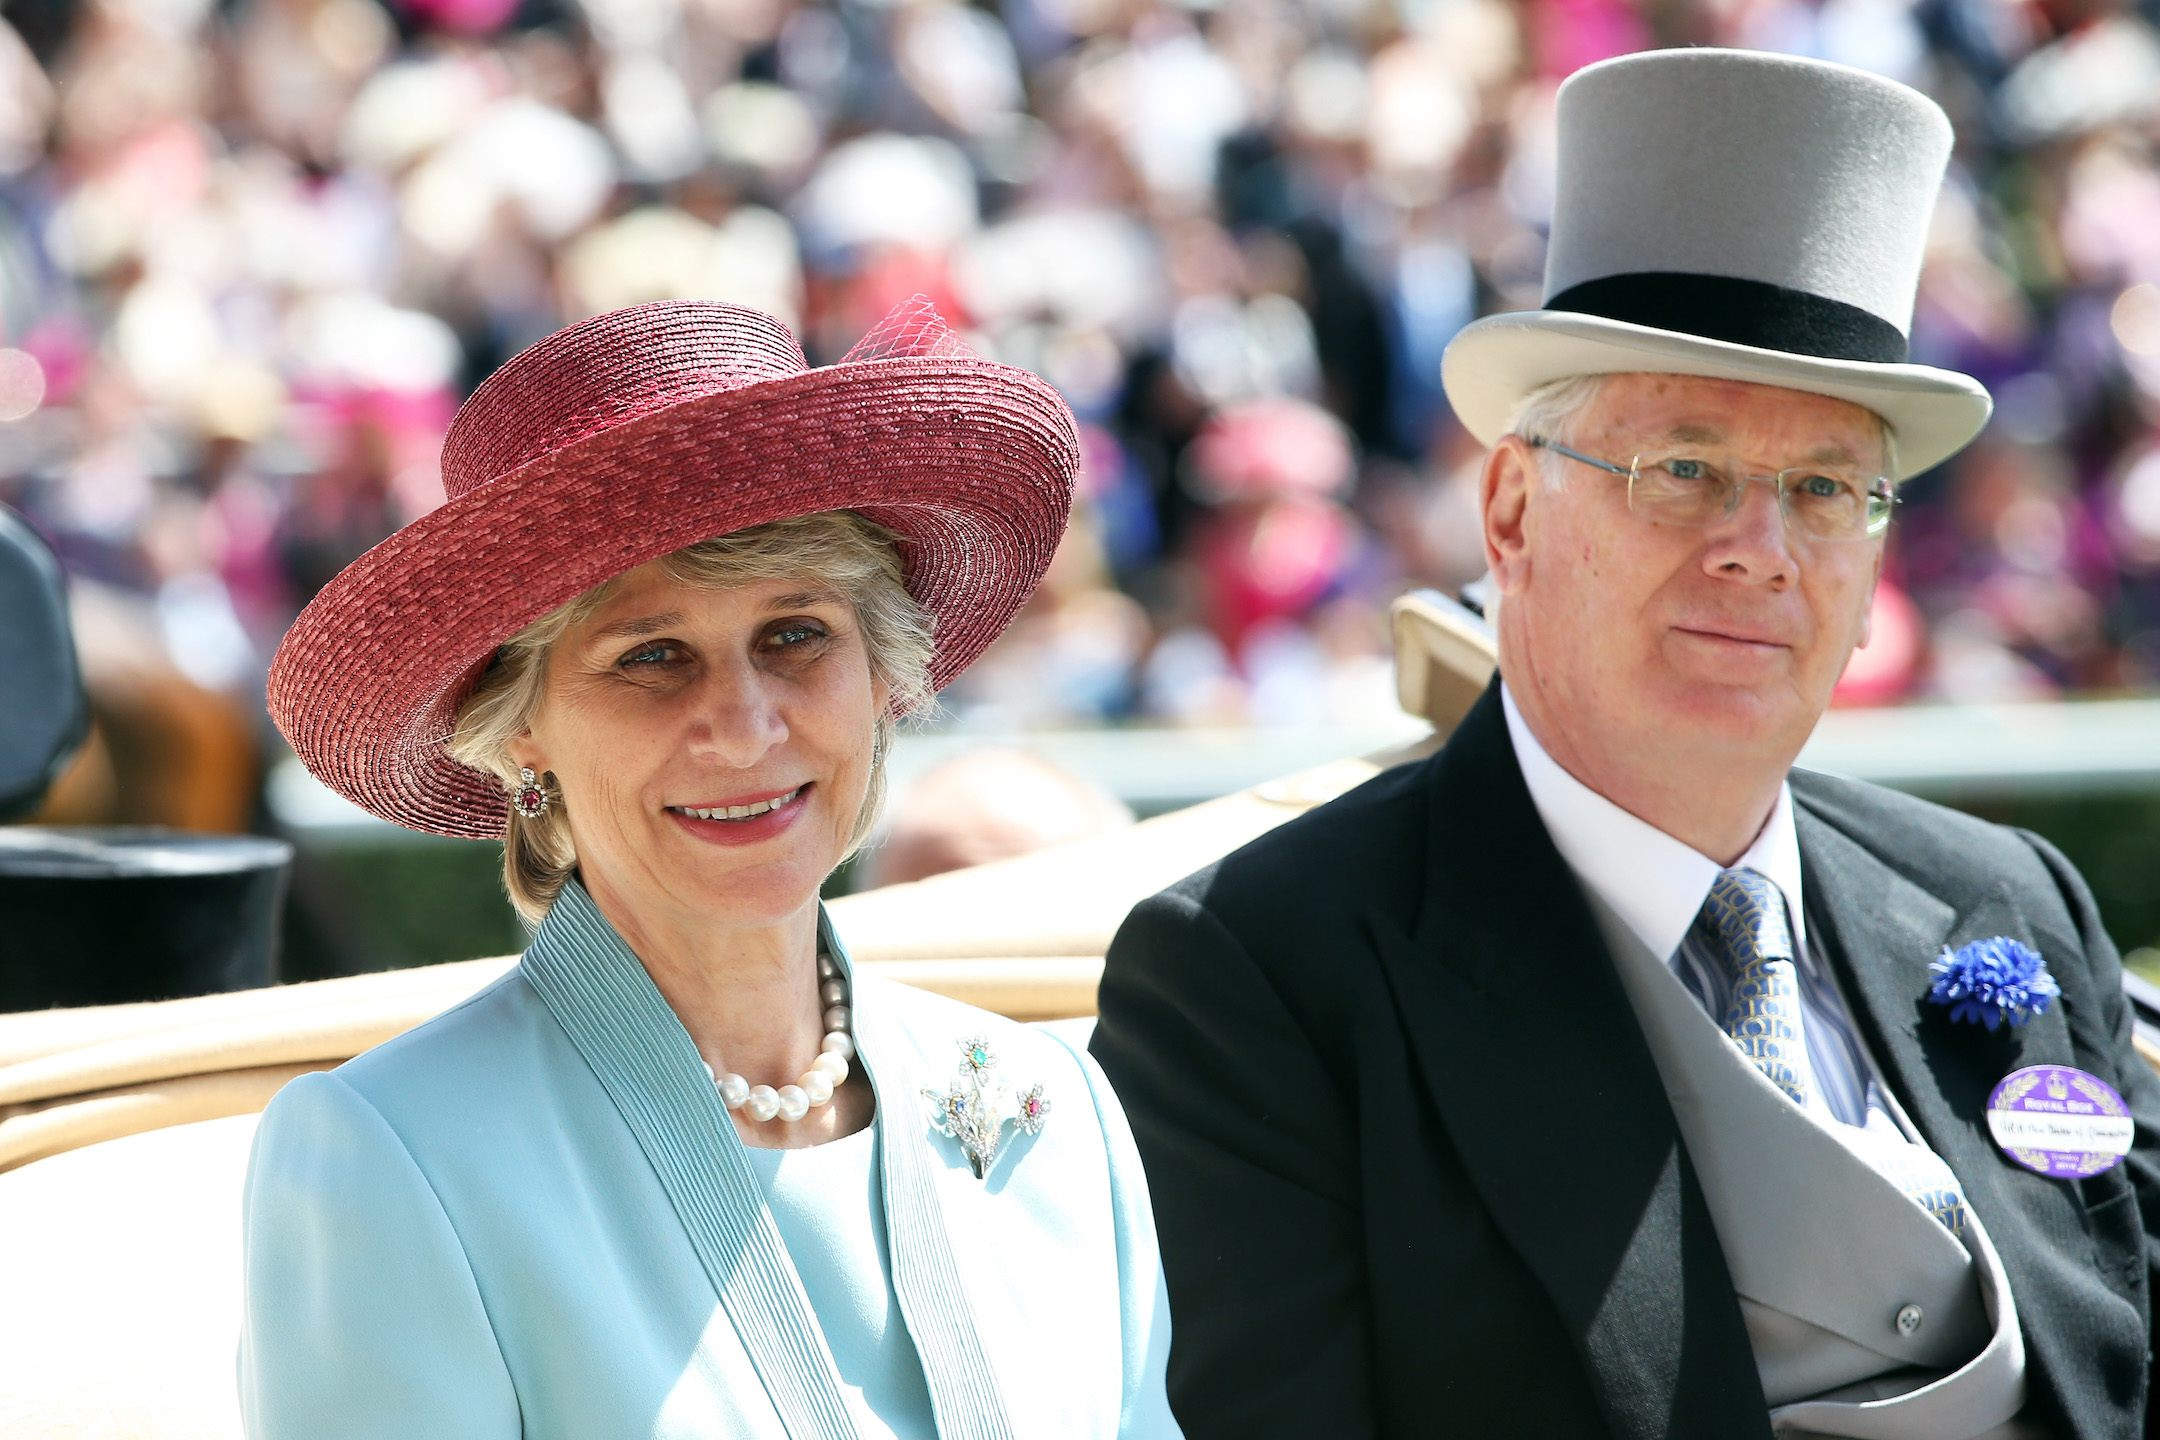 Prince Richard, Duke of Gloucester (R) and Brigitte, Duchess of Gloucester